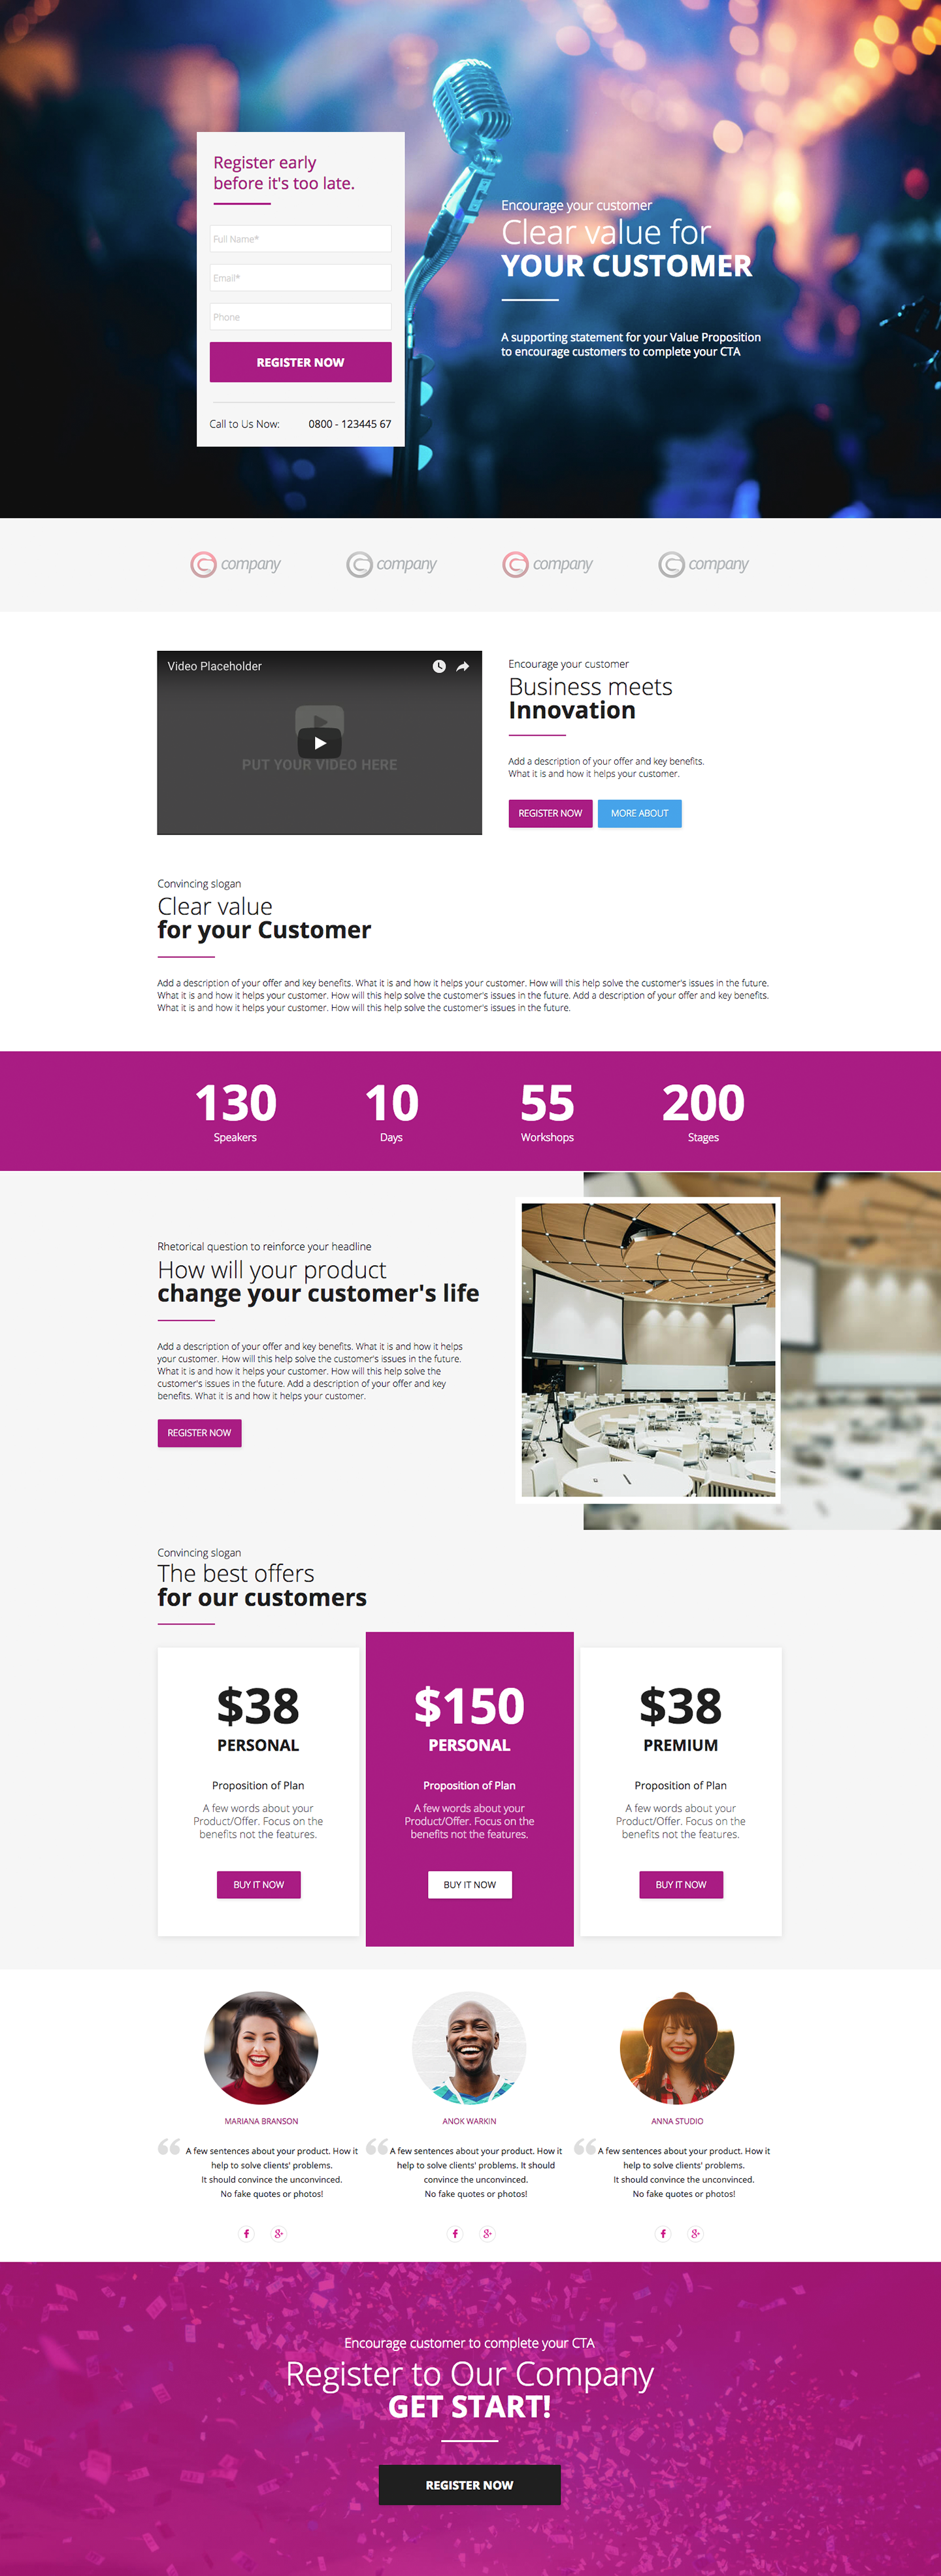 Website templates party time event company planner entertainment.